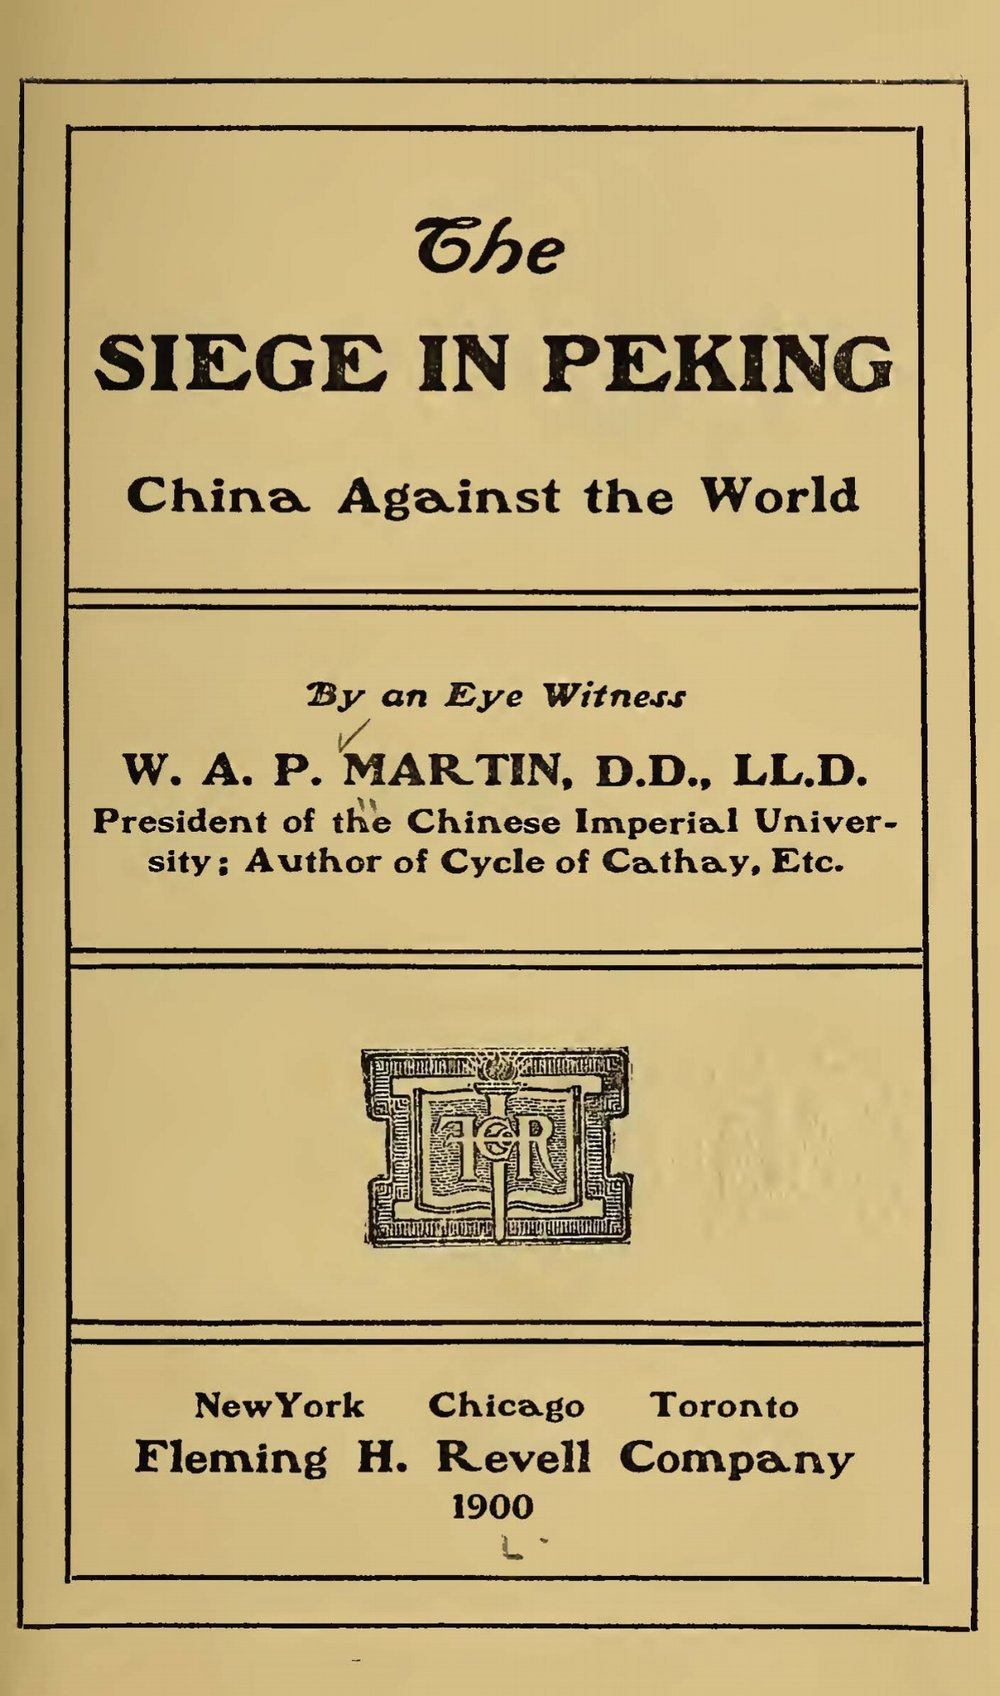 Martin, William Alexander Parsons, The Siege in Peking Title Page.jpg